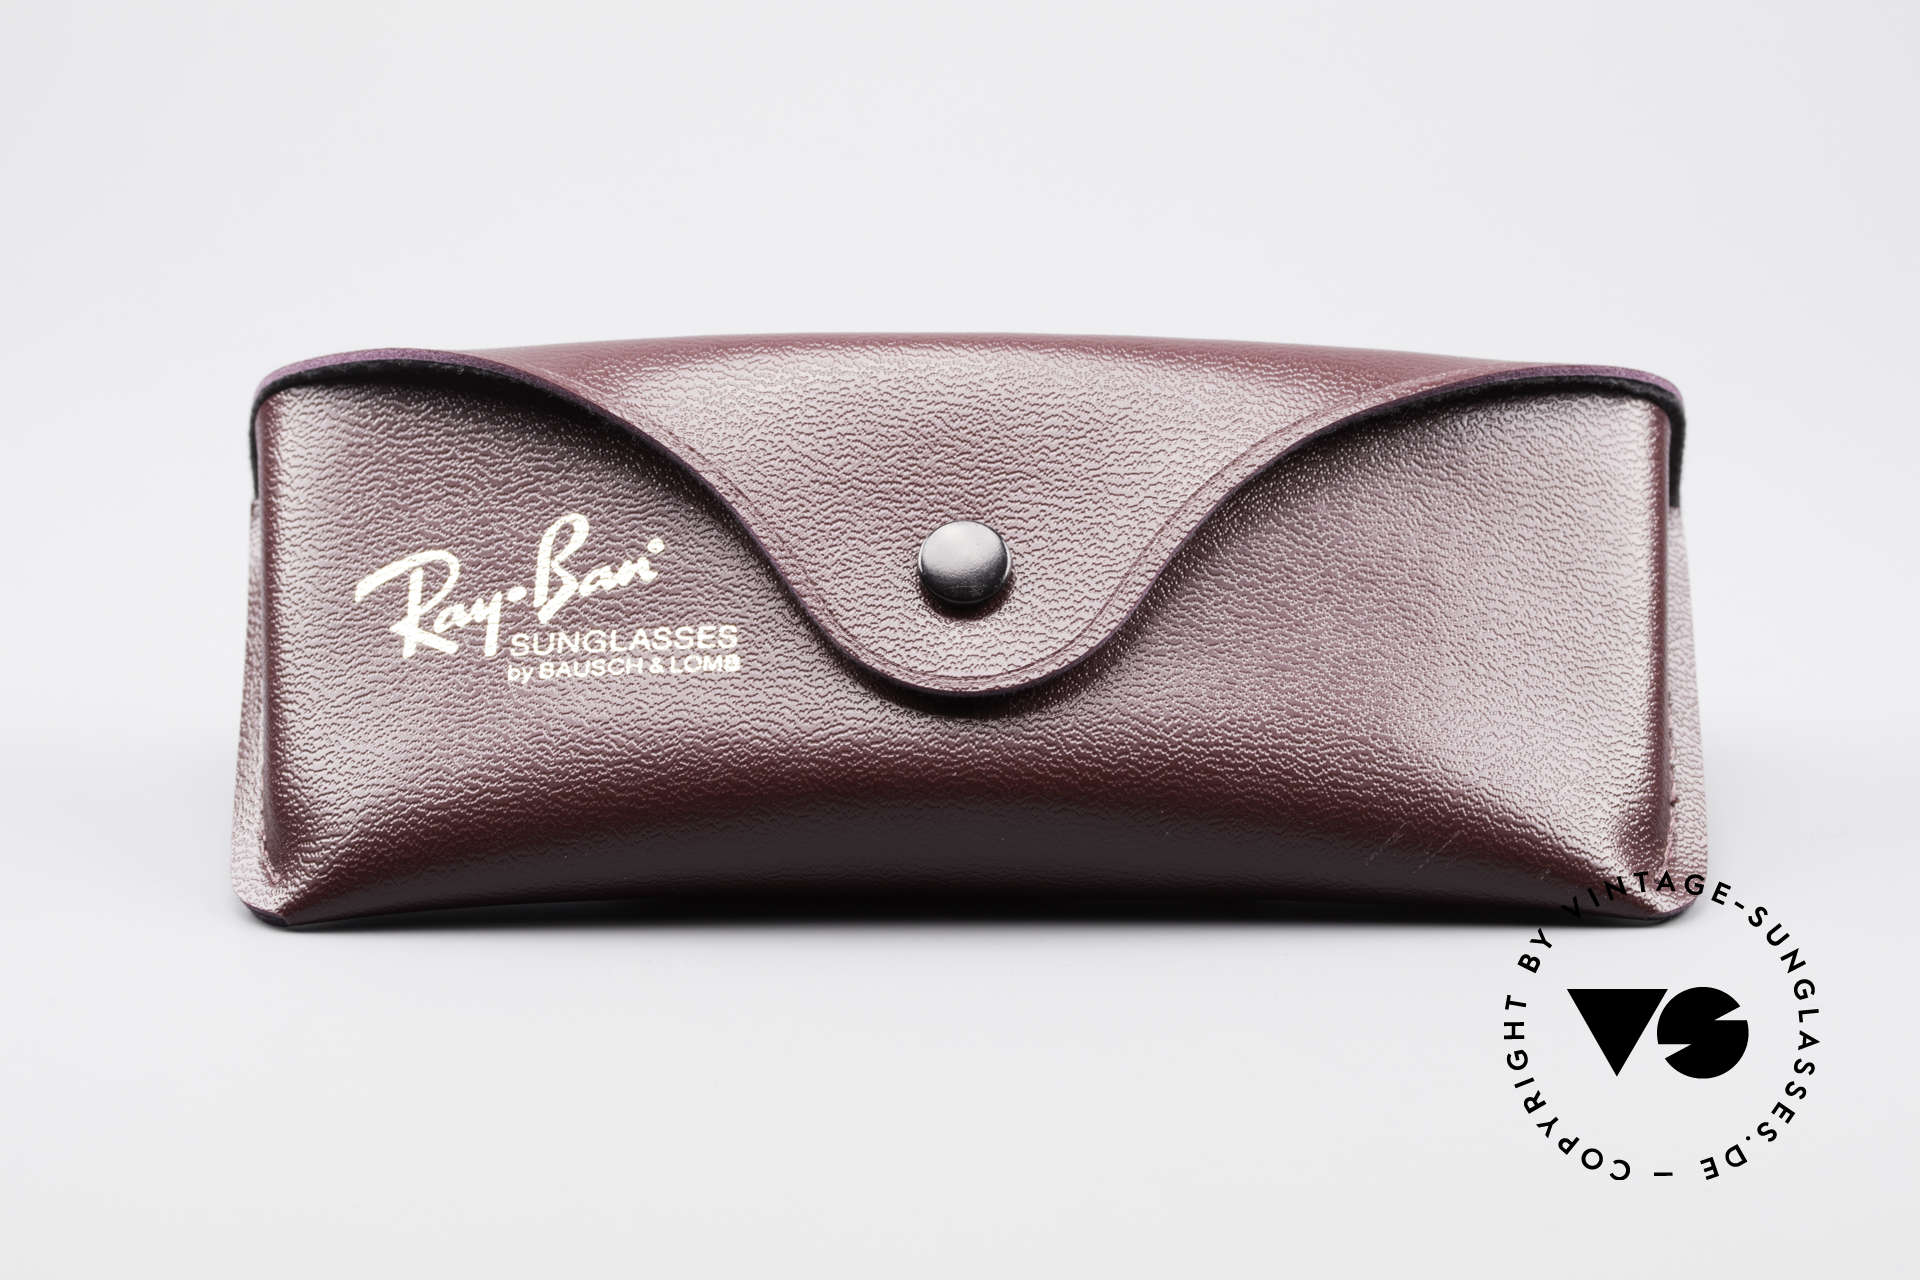 Ray Ban Clubmaster Bausch & Lomb USA Shades, NO retro sunglasses, but a 25 years old original!, Made for Women